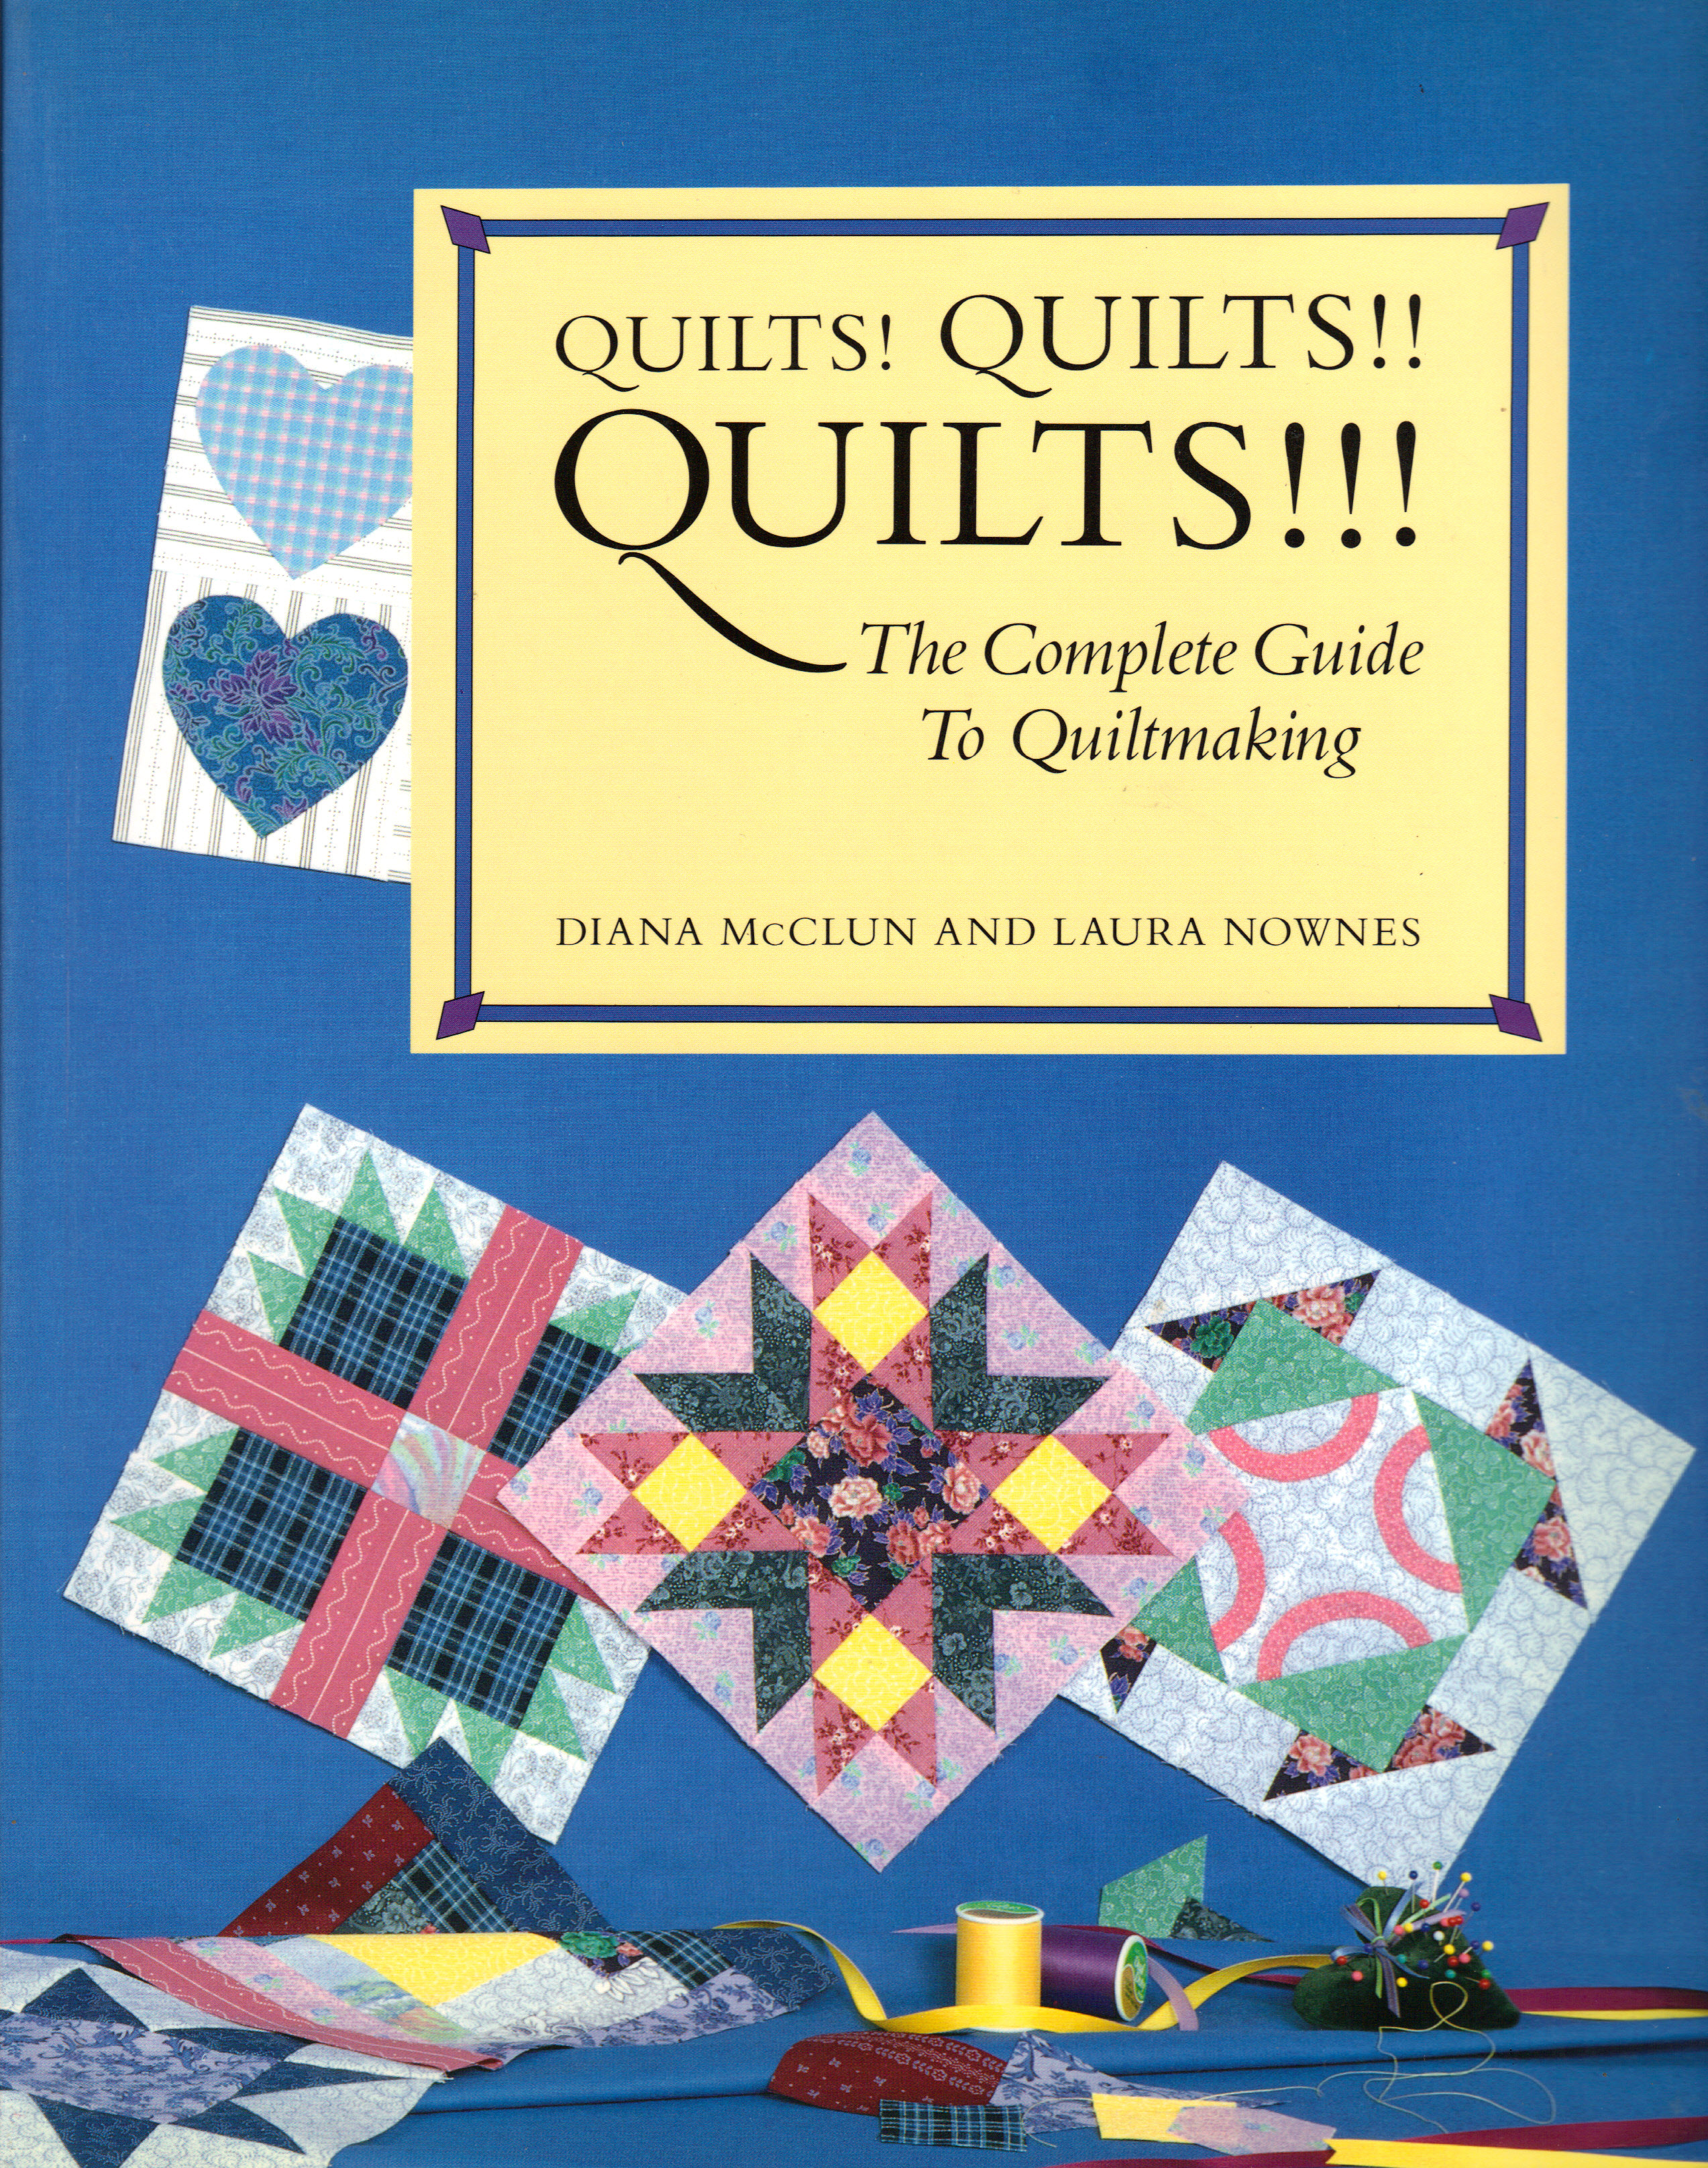 Image for QUILTS!  QUILTS!  QUILTS!